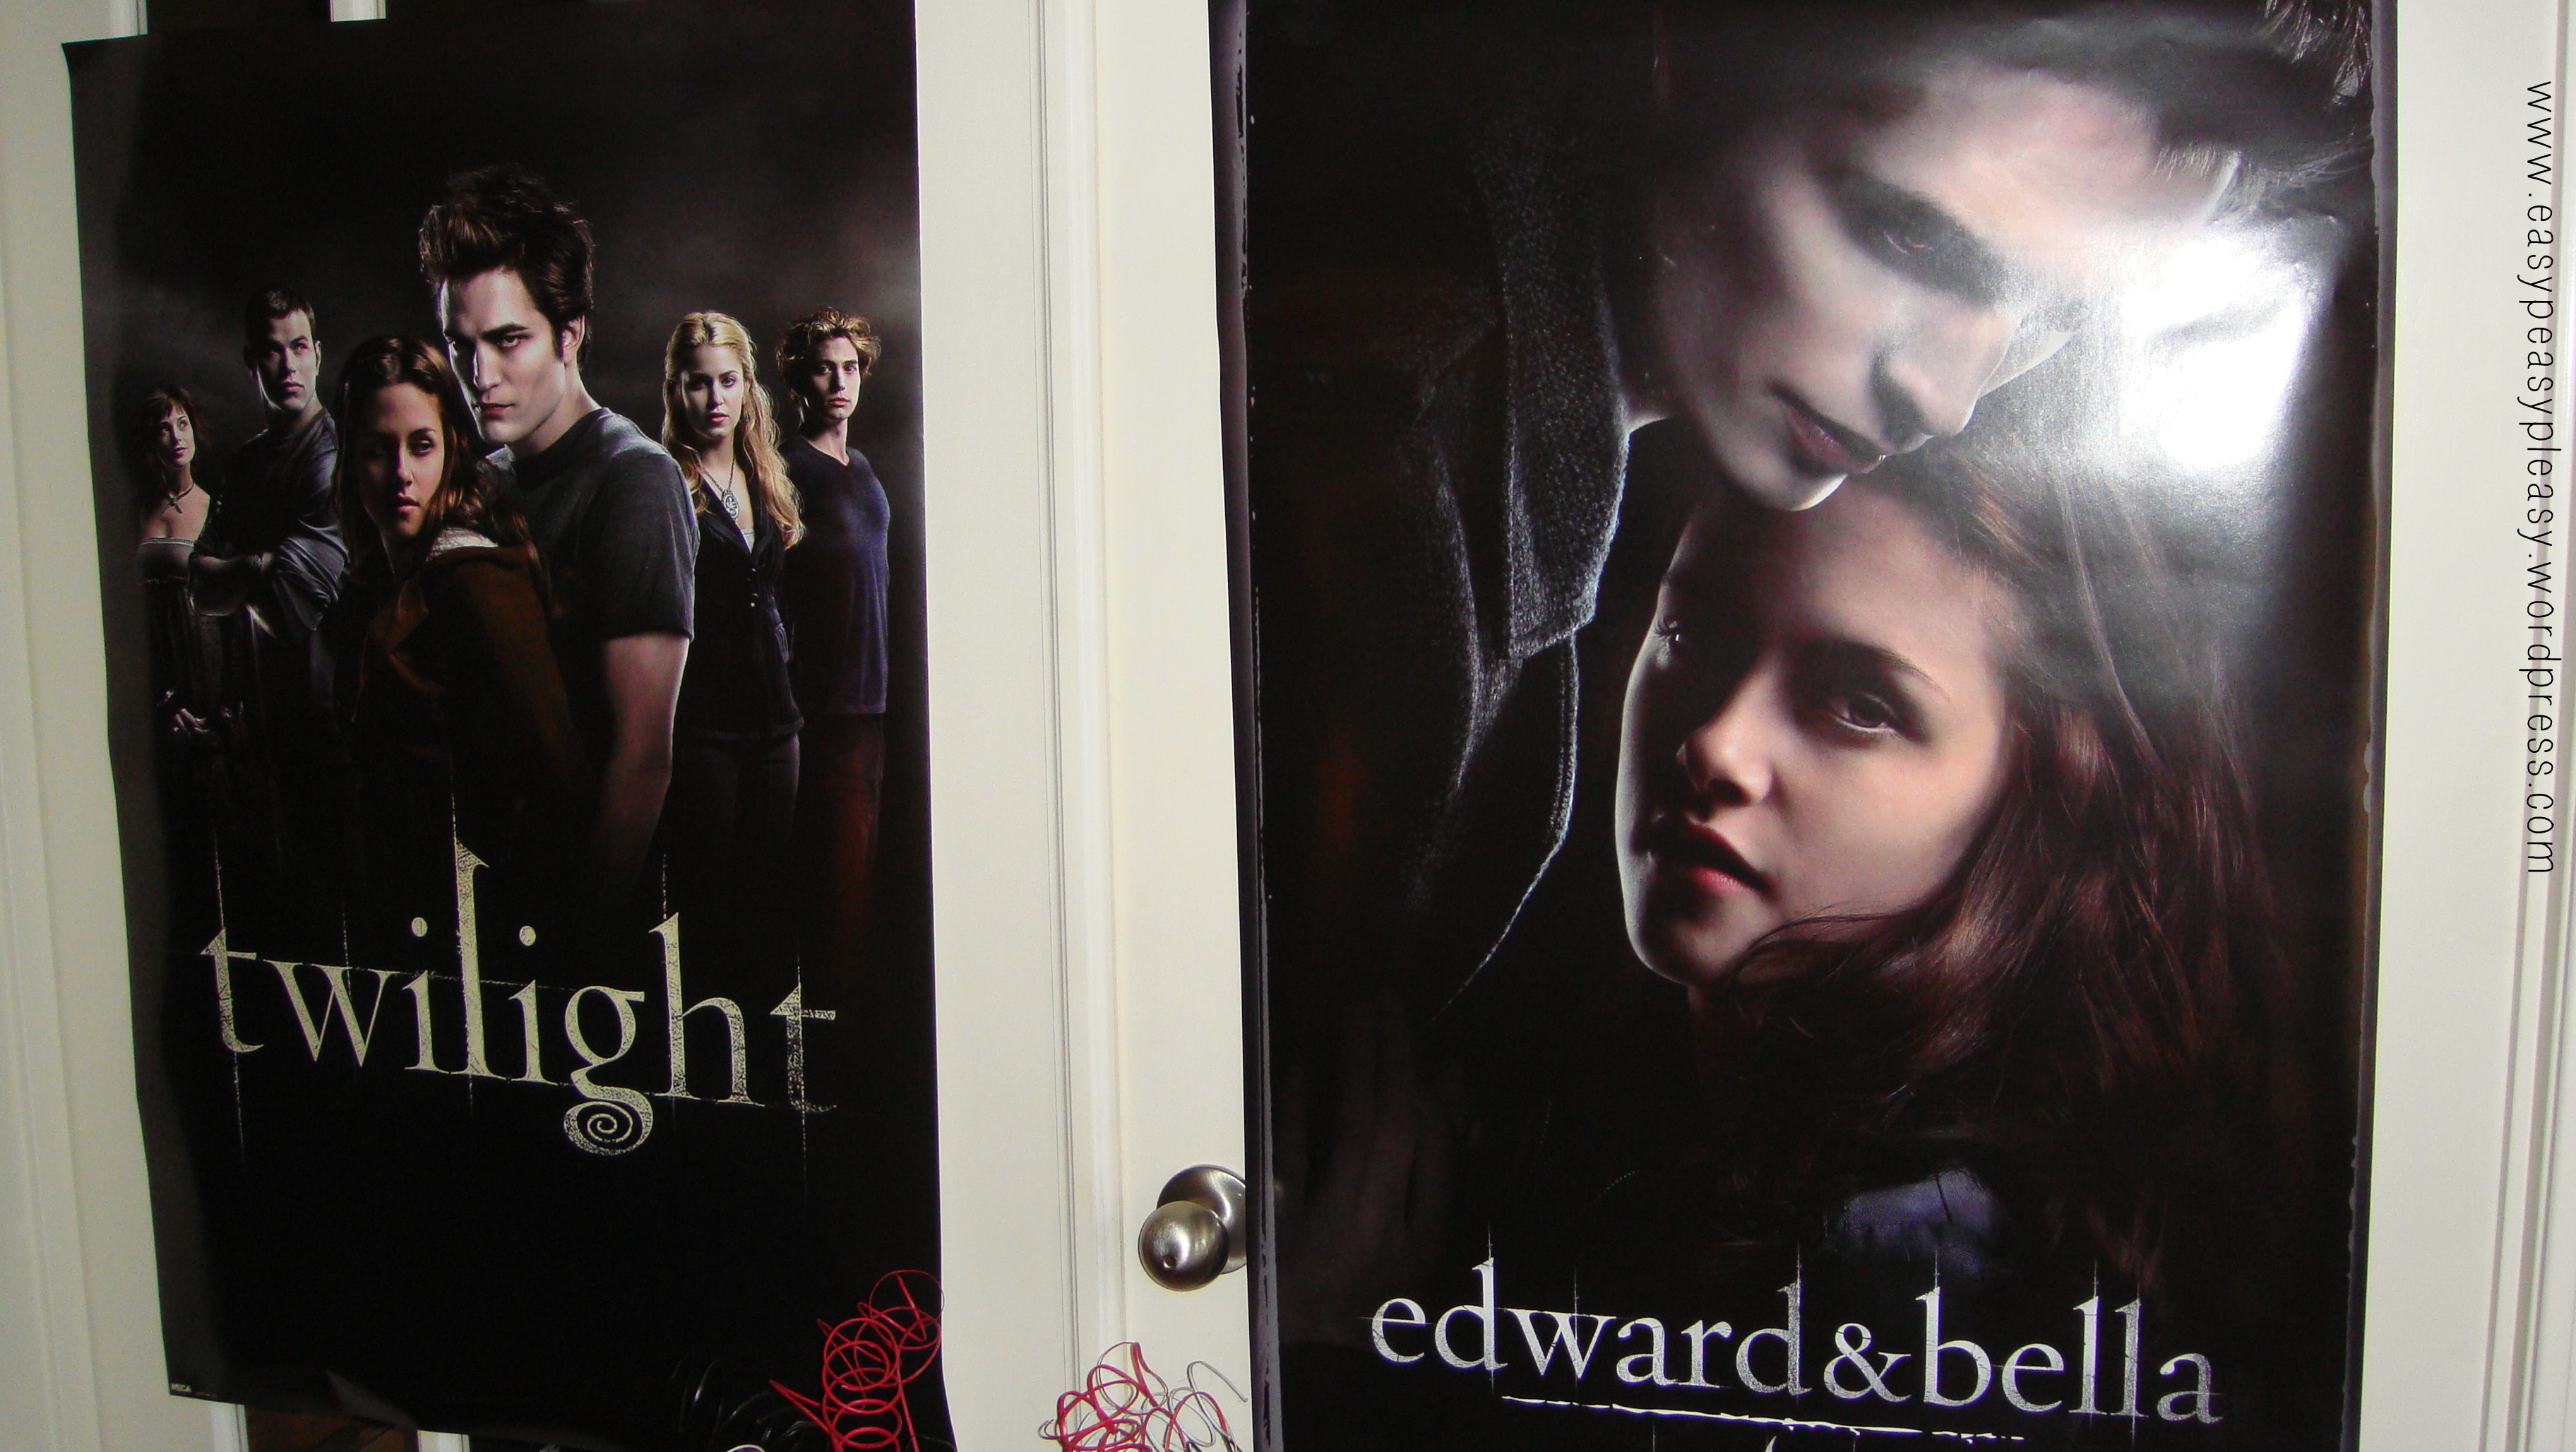 Twilight Saga New Moon Party Now Showing Posters